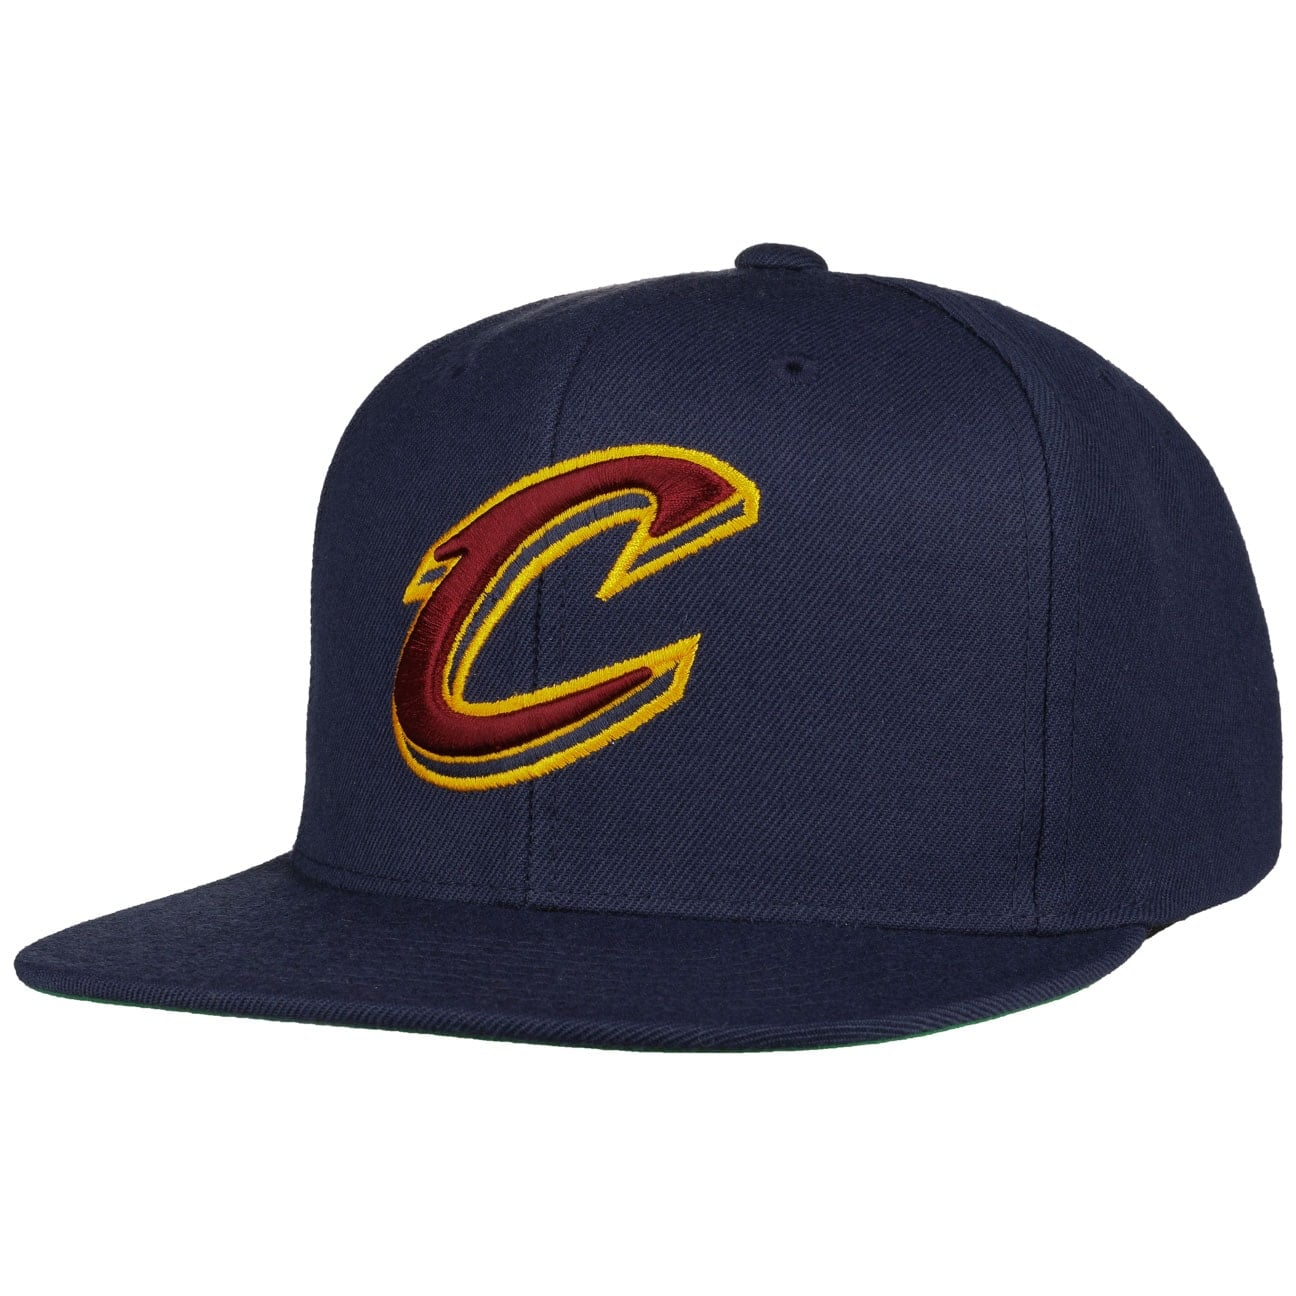 wool-solid-2-cavs-by-mitchell-ness